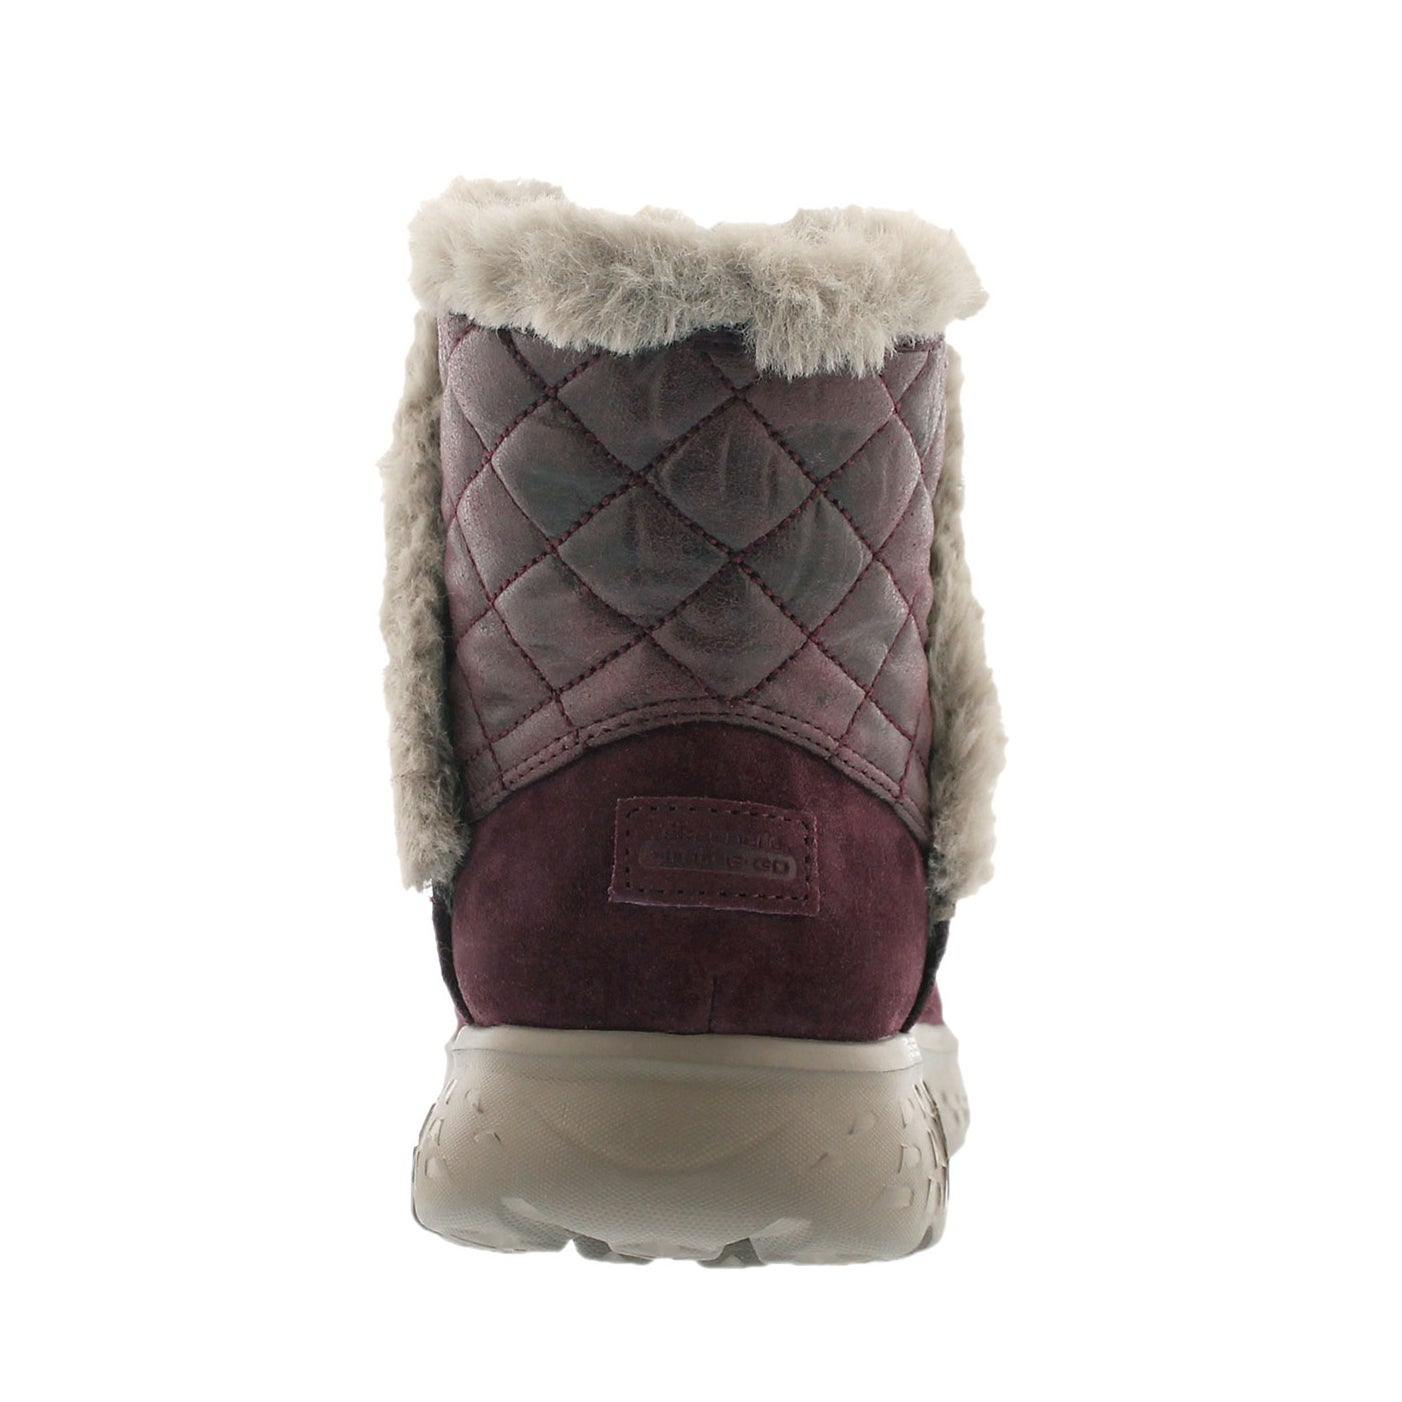 Lds 400 Cozies burg quilted suede boot